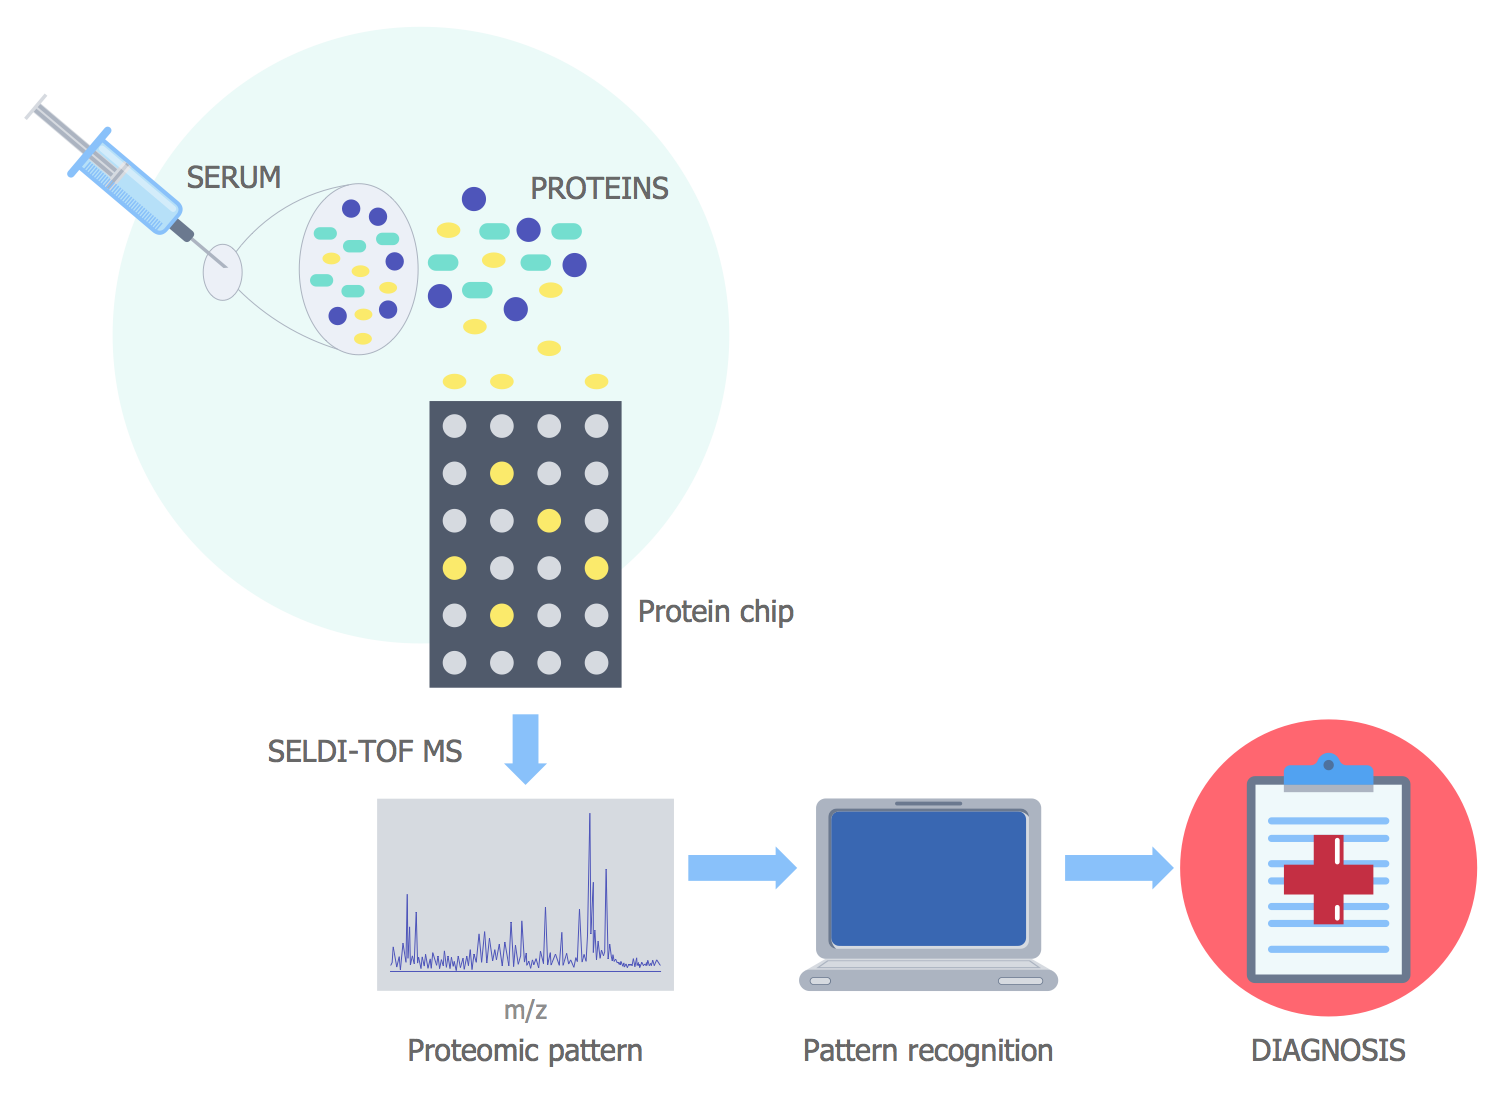 Disease Diagnostics Using Proteomic Patterns